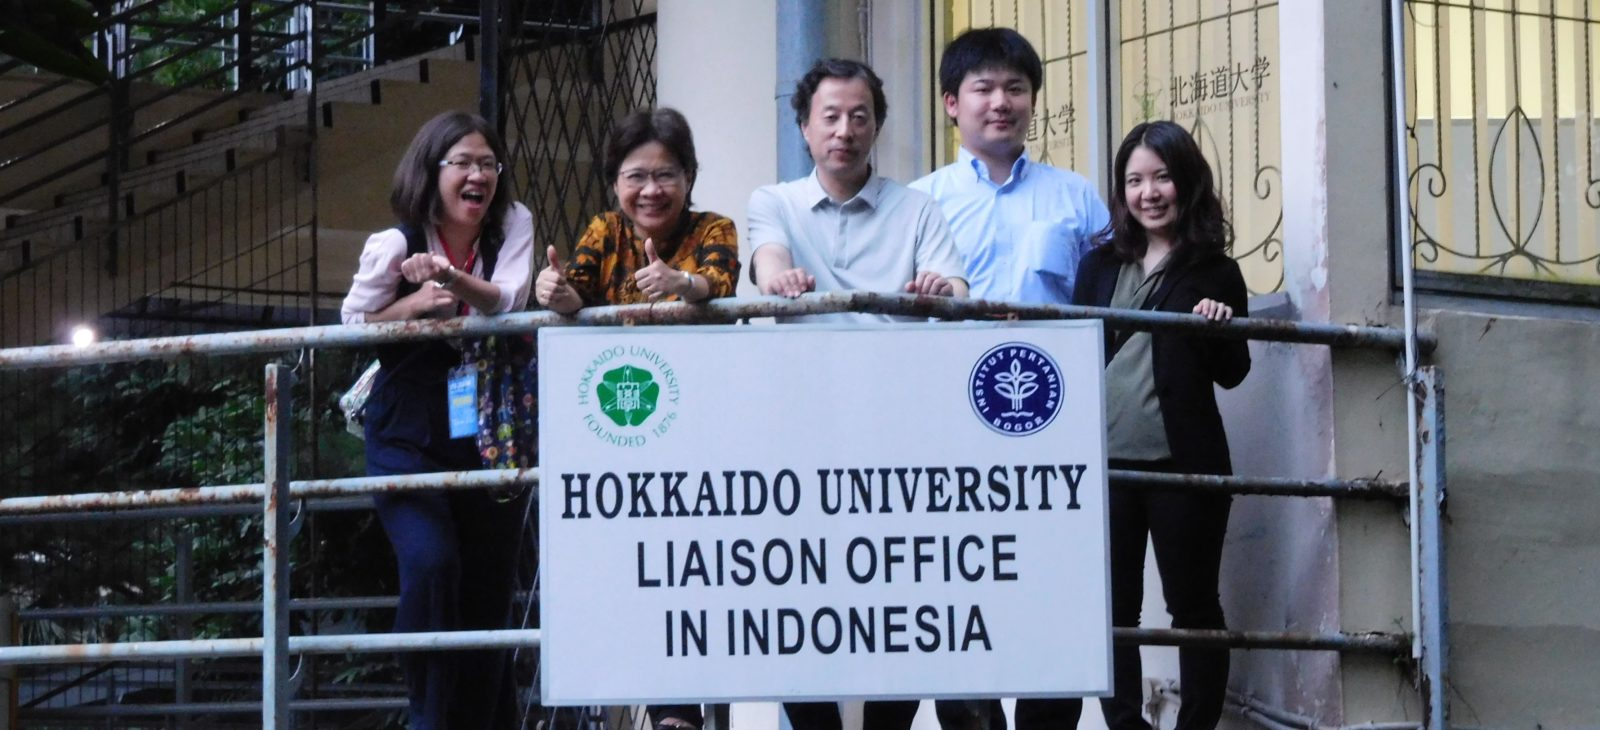 The sign and staff of Liaison Office in Indonesia